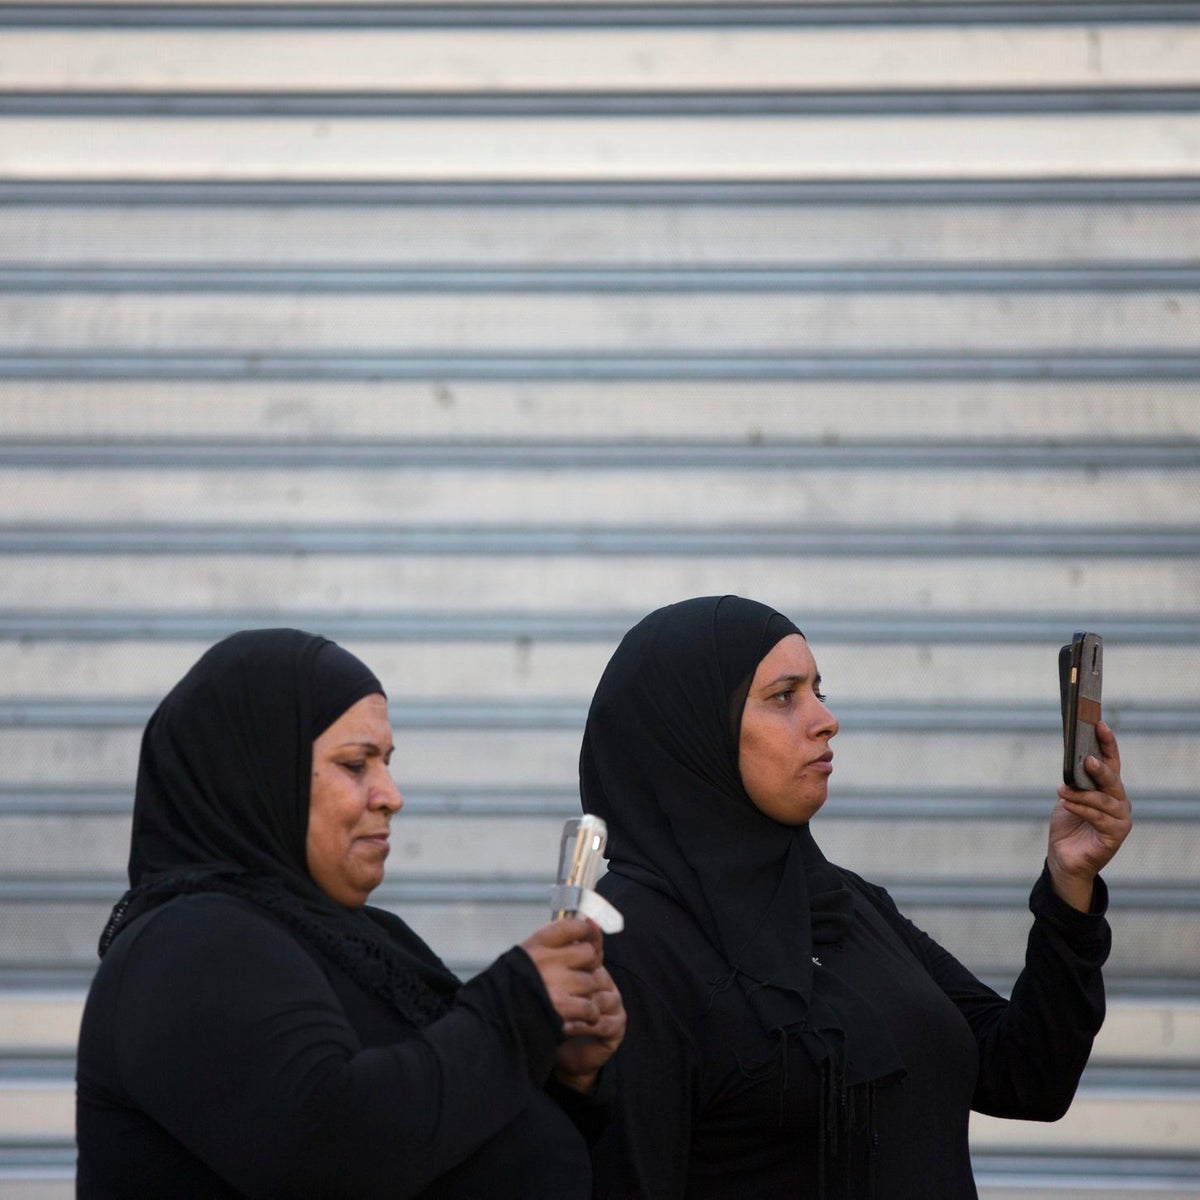 Israeli Arab women take pictures with their smartIsraeli Arab women take pictures with their smartphones during a parade for the Eid al-Adha festival in Jaffa, Sept. 12, 2016.